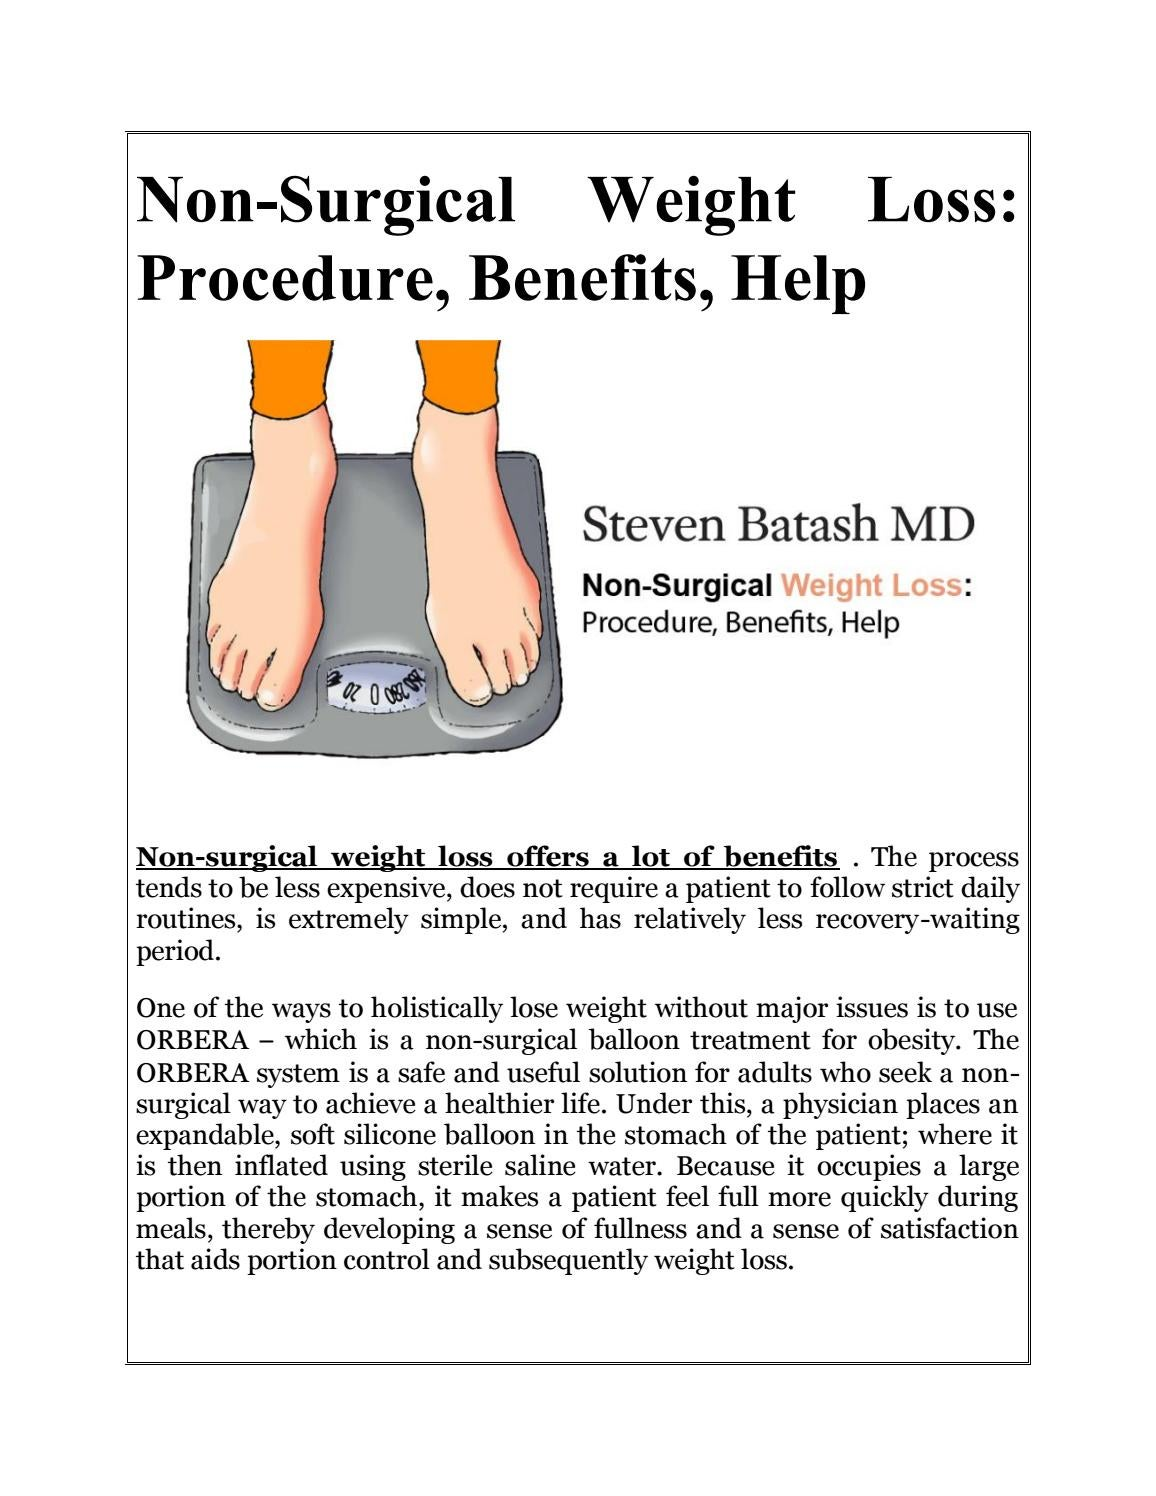 Non Surgical Weight Loss Procedure Benefits Help By Steven Batash